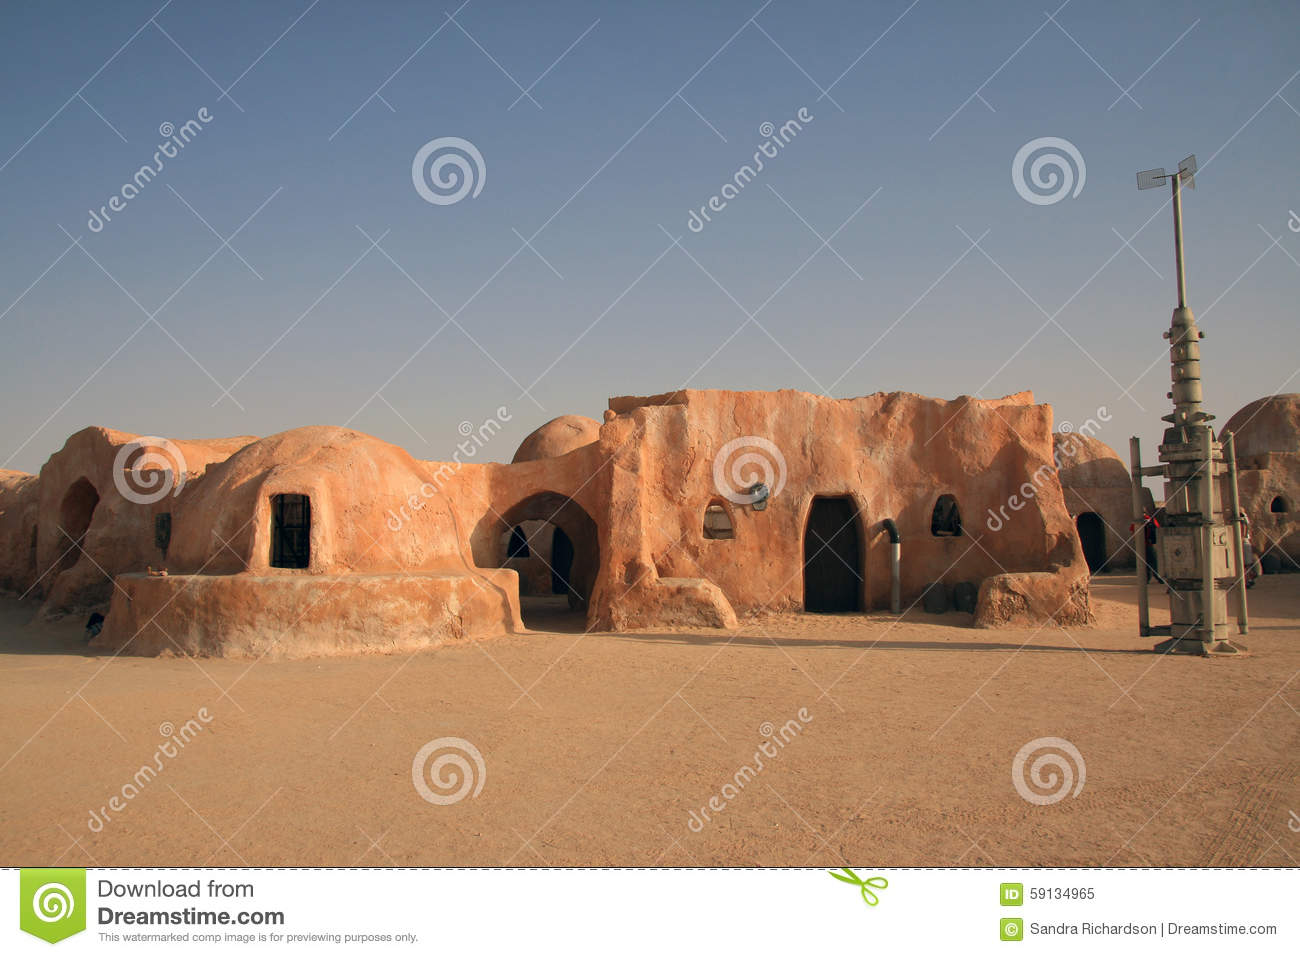 9 918 Star Wars Photos Free Royalty Free Stock Photos From Dreamstime